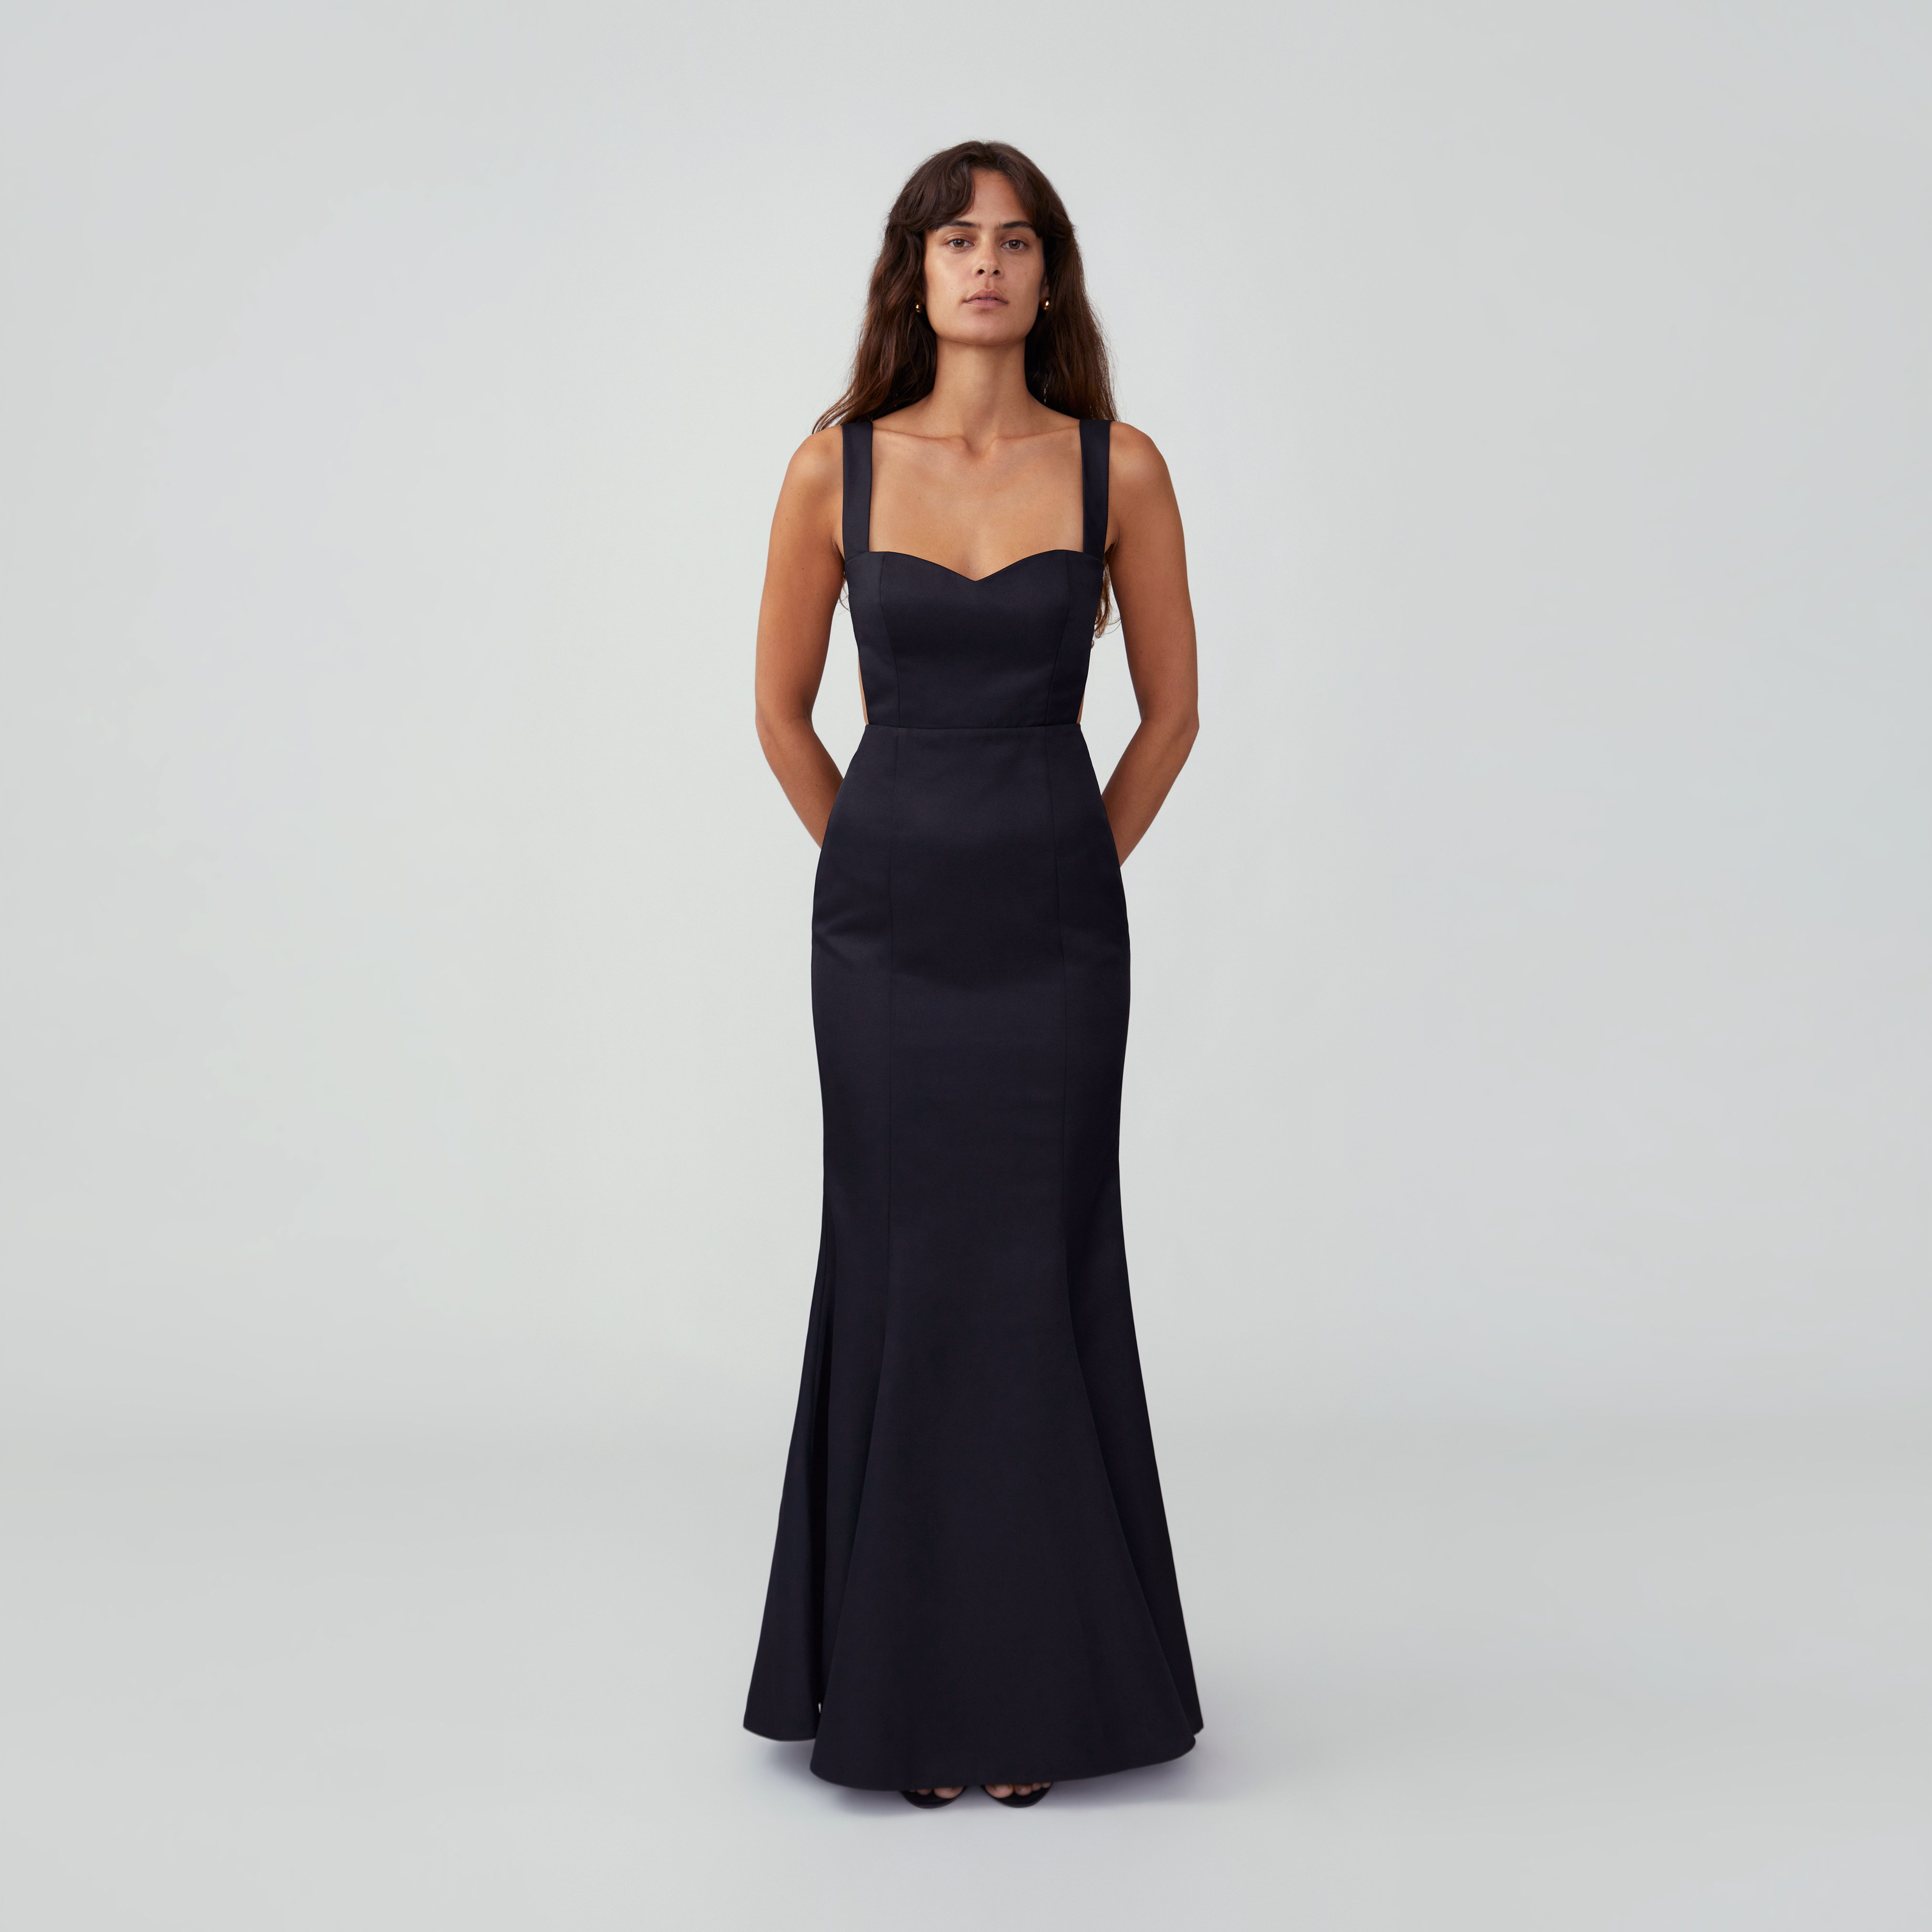 Strappy Mermaid Gown